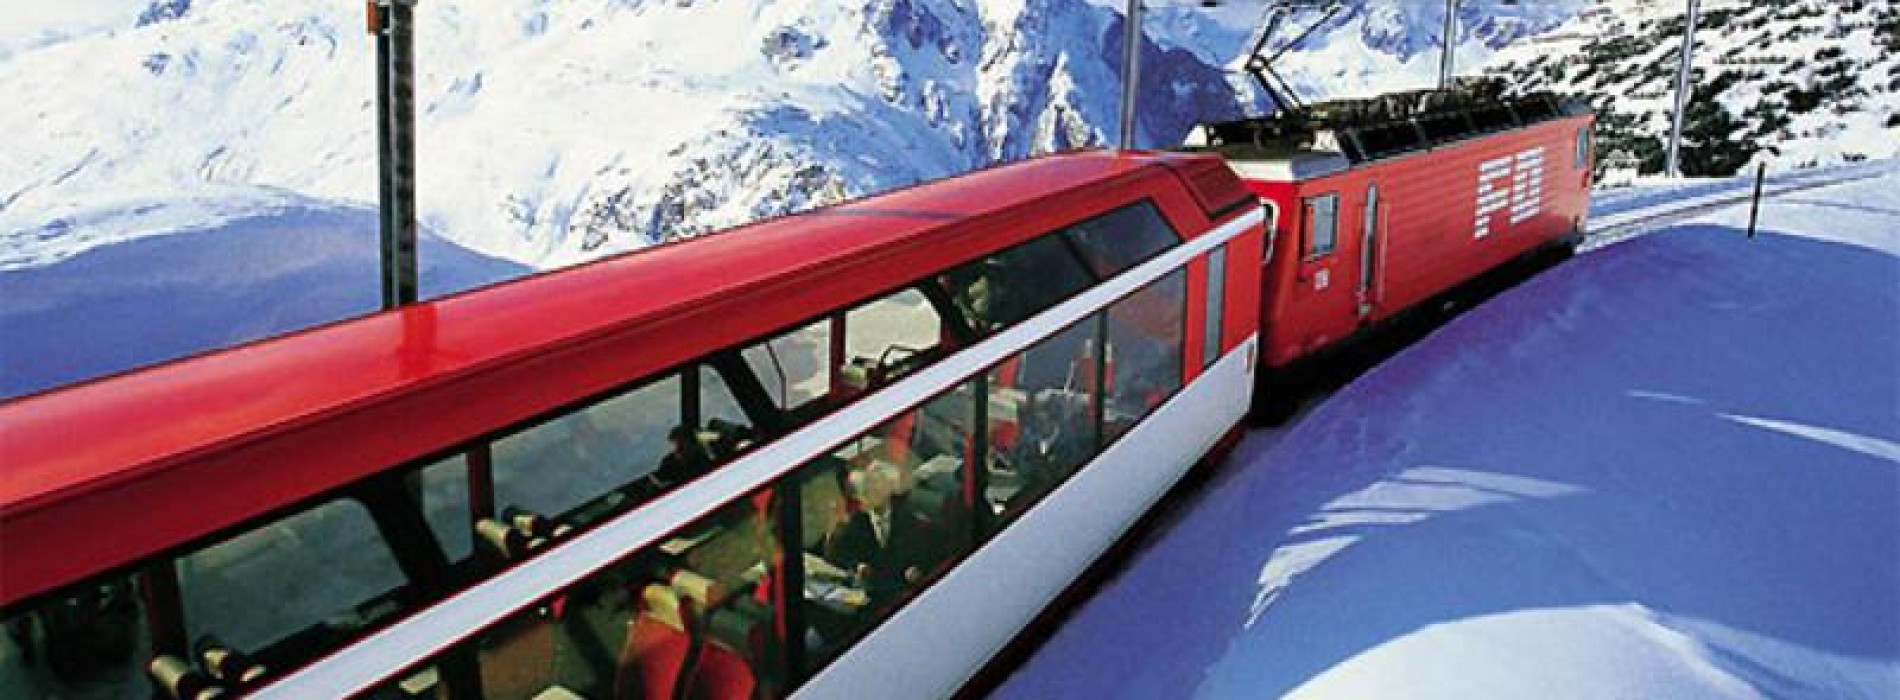 Call of panoramic mountain rides and Swiss watch-making tour